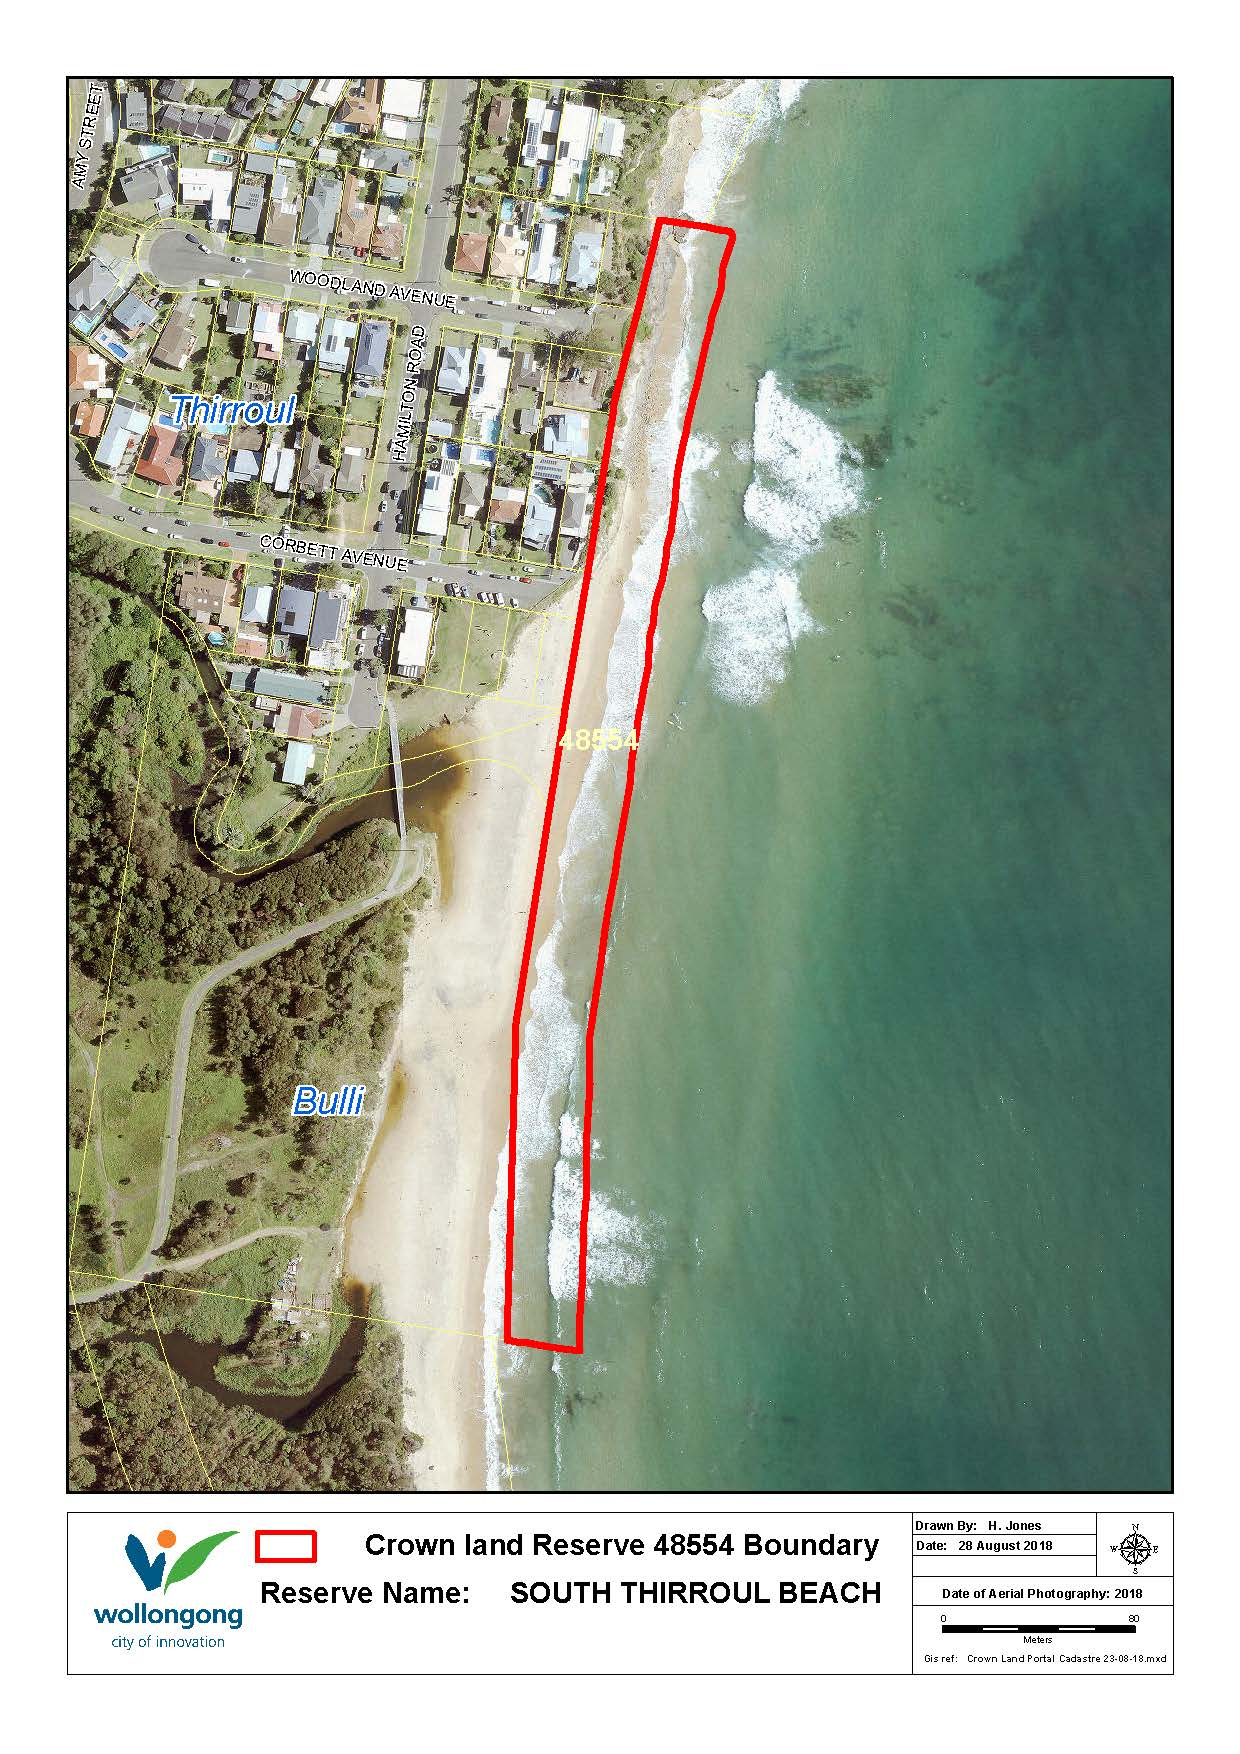 South thirroul beach reserve 48554  map z19 91178